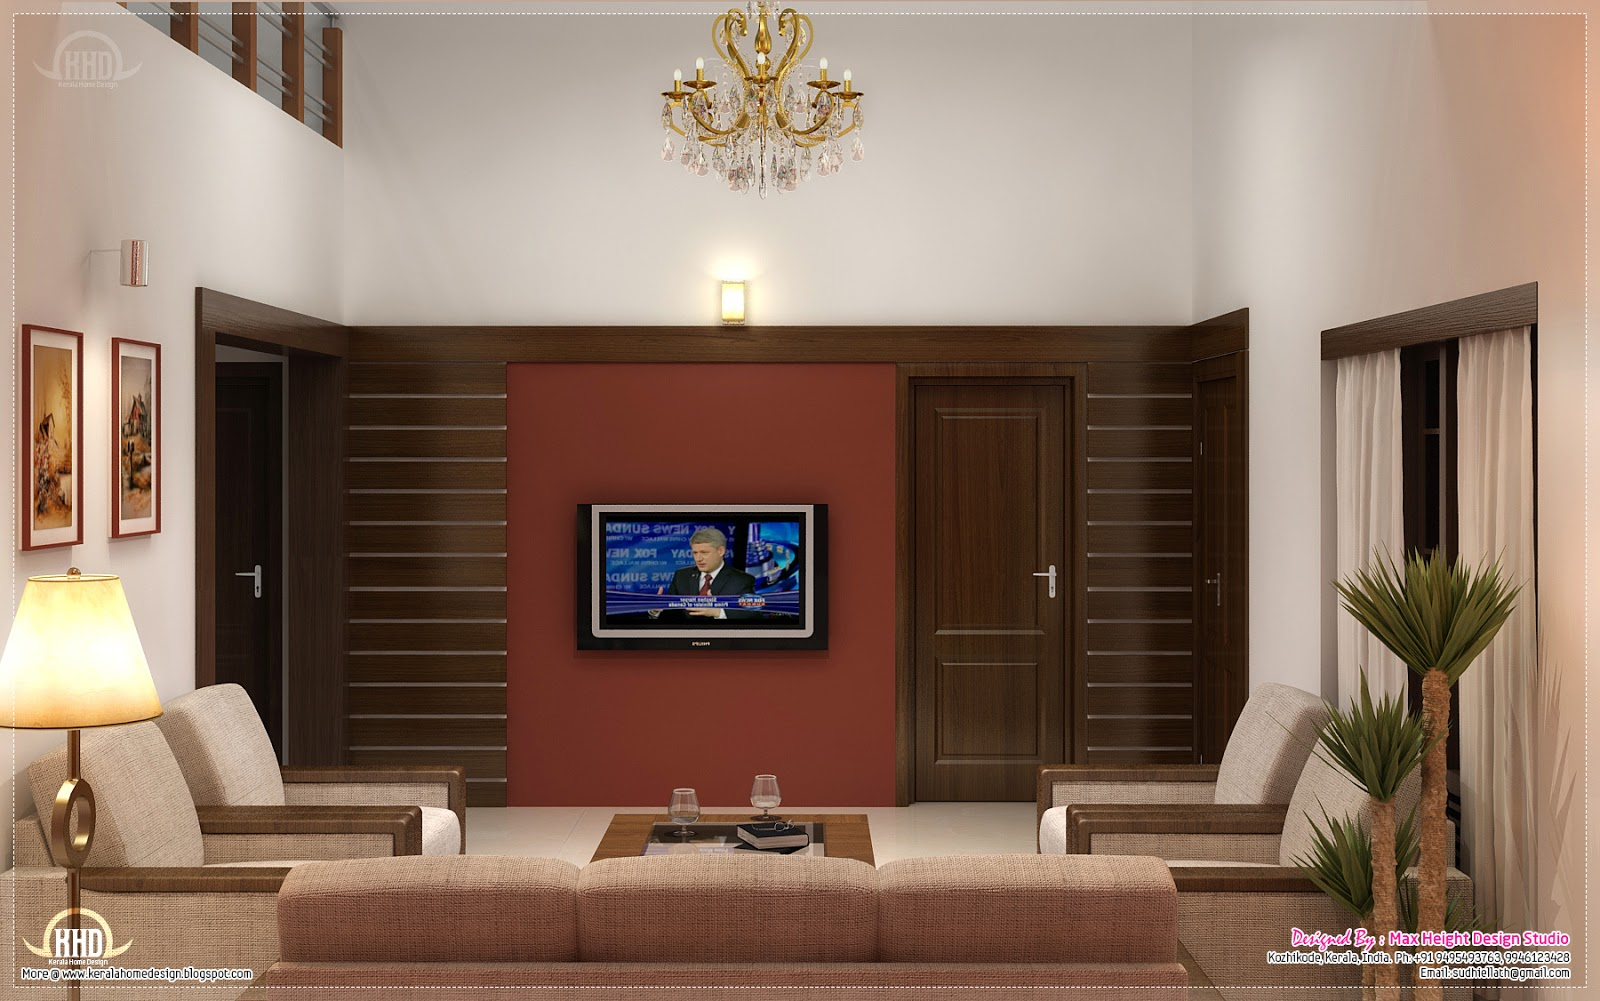 Home interior design ideas home kerala plans Home interior ideas